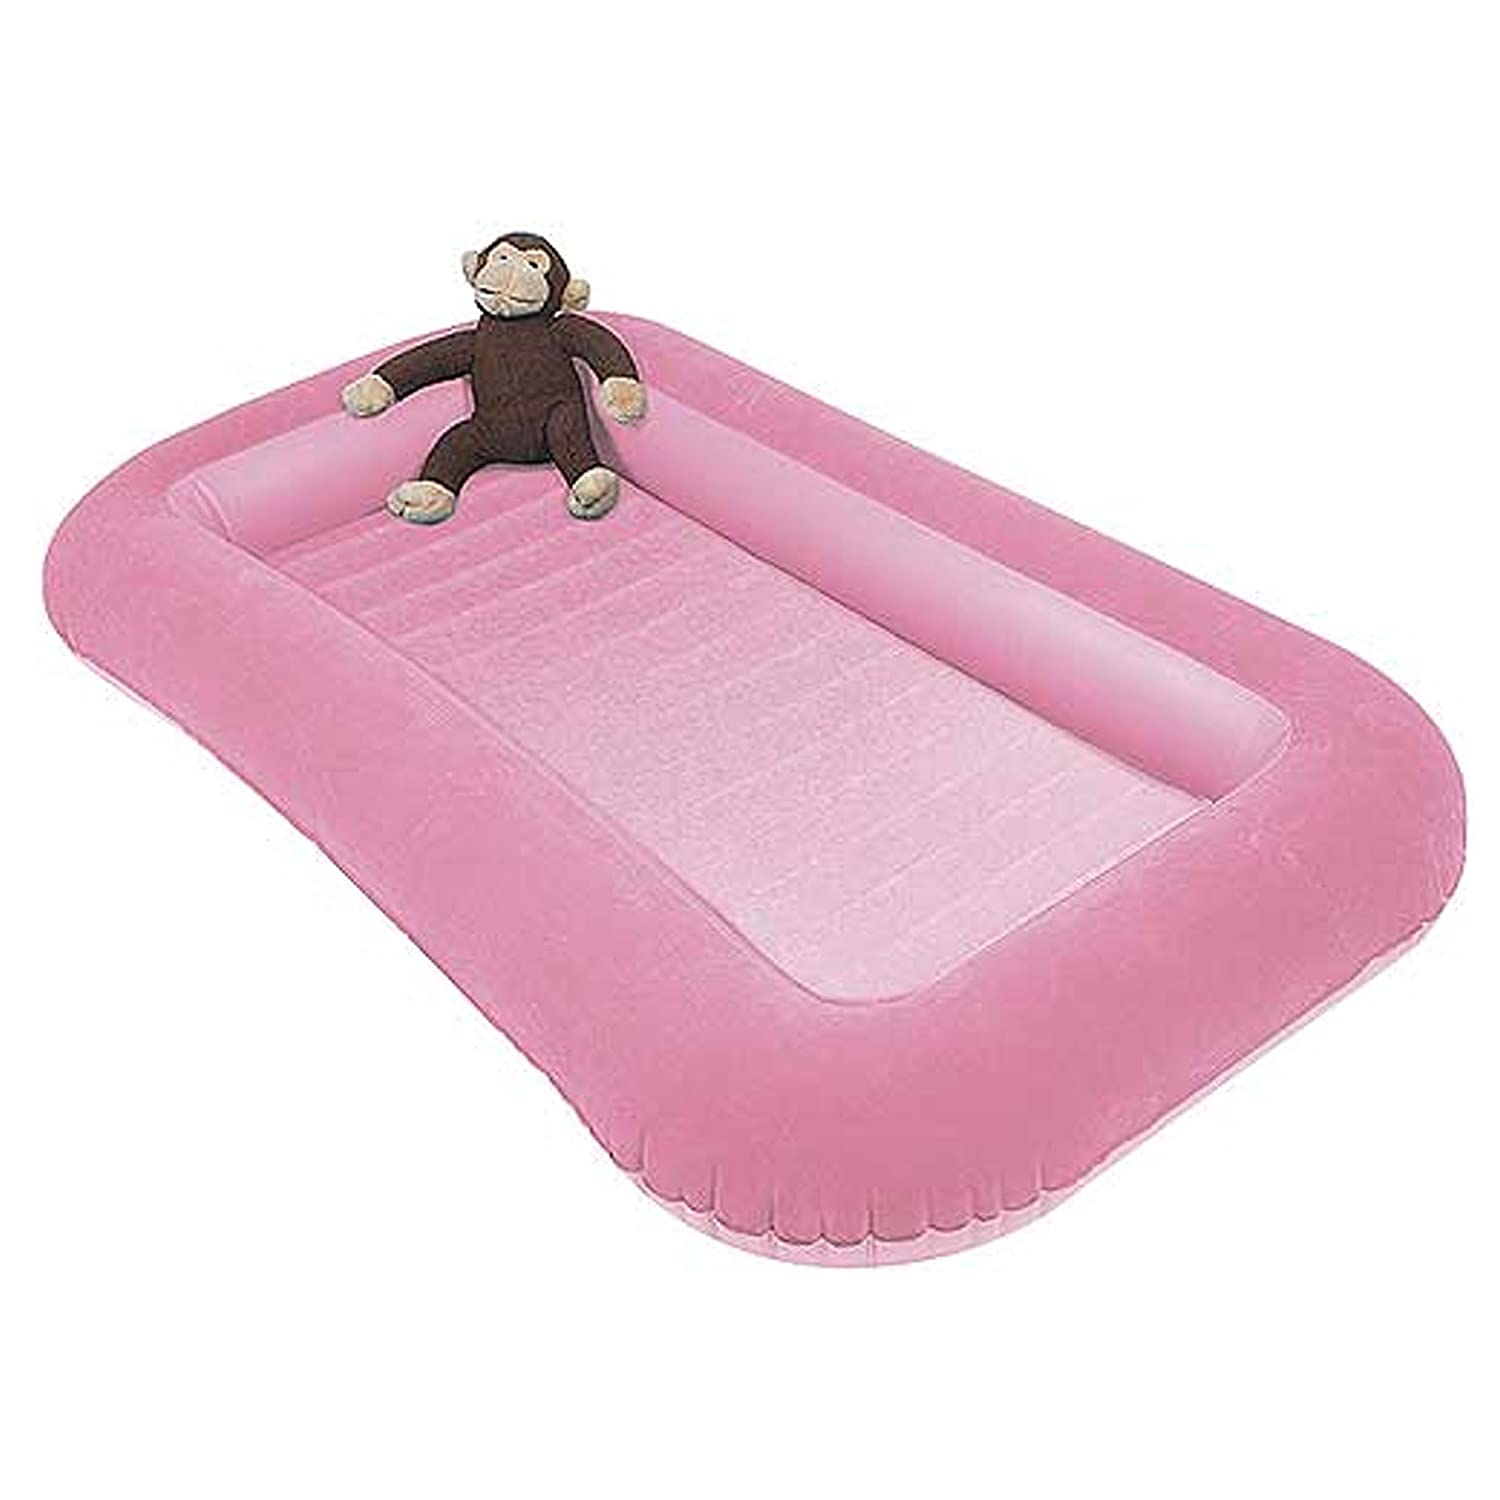 Kampa Airlock Junior Camp Air Bed With Side Cushions Candyfloss Pink Amazoncouk Sports Outdoors